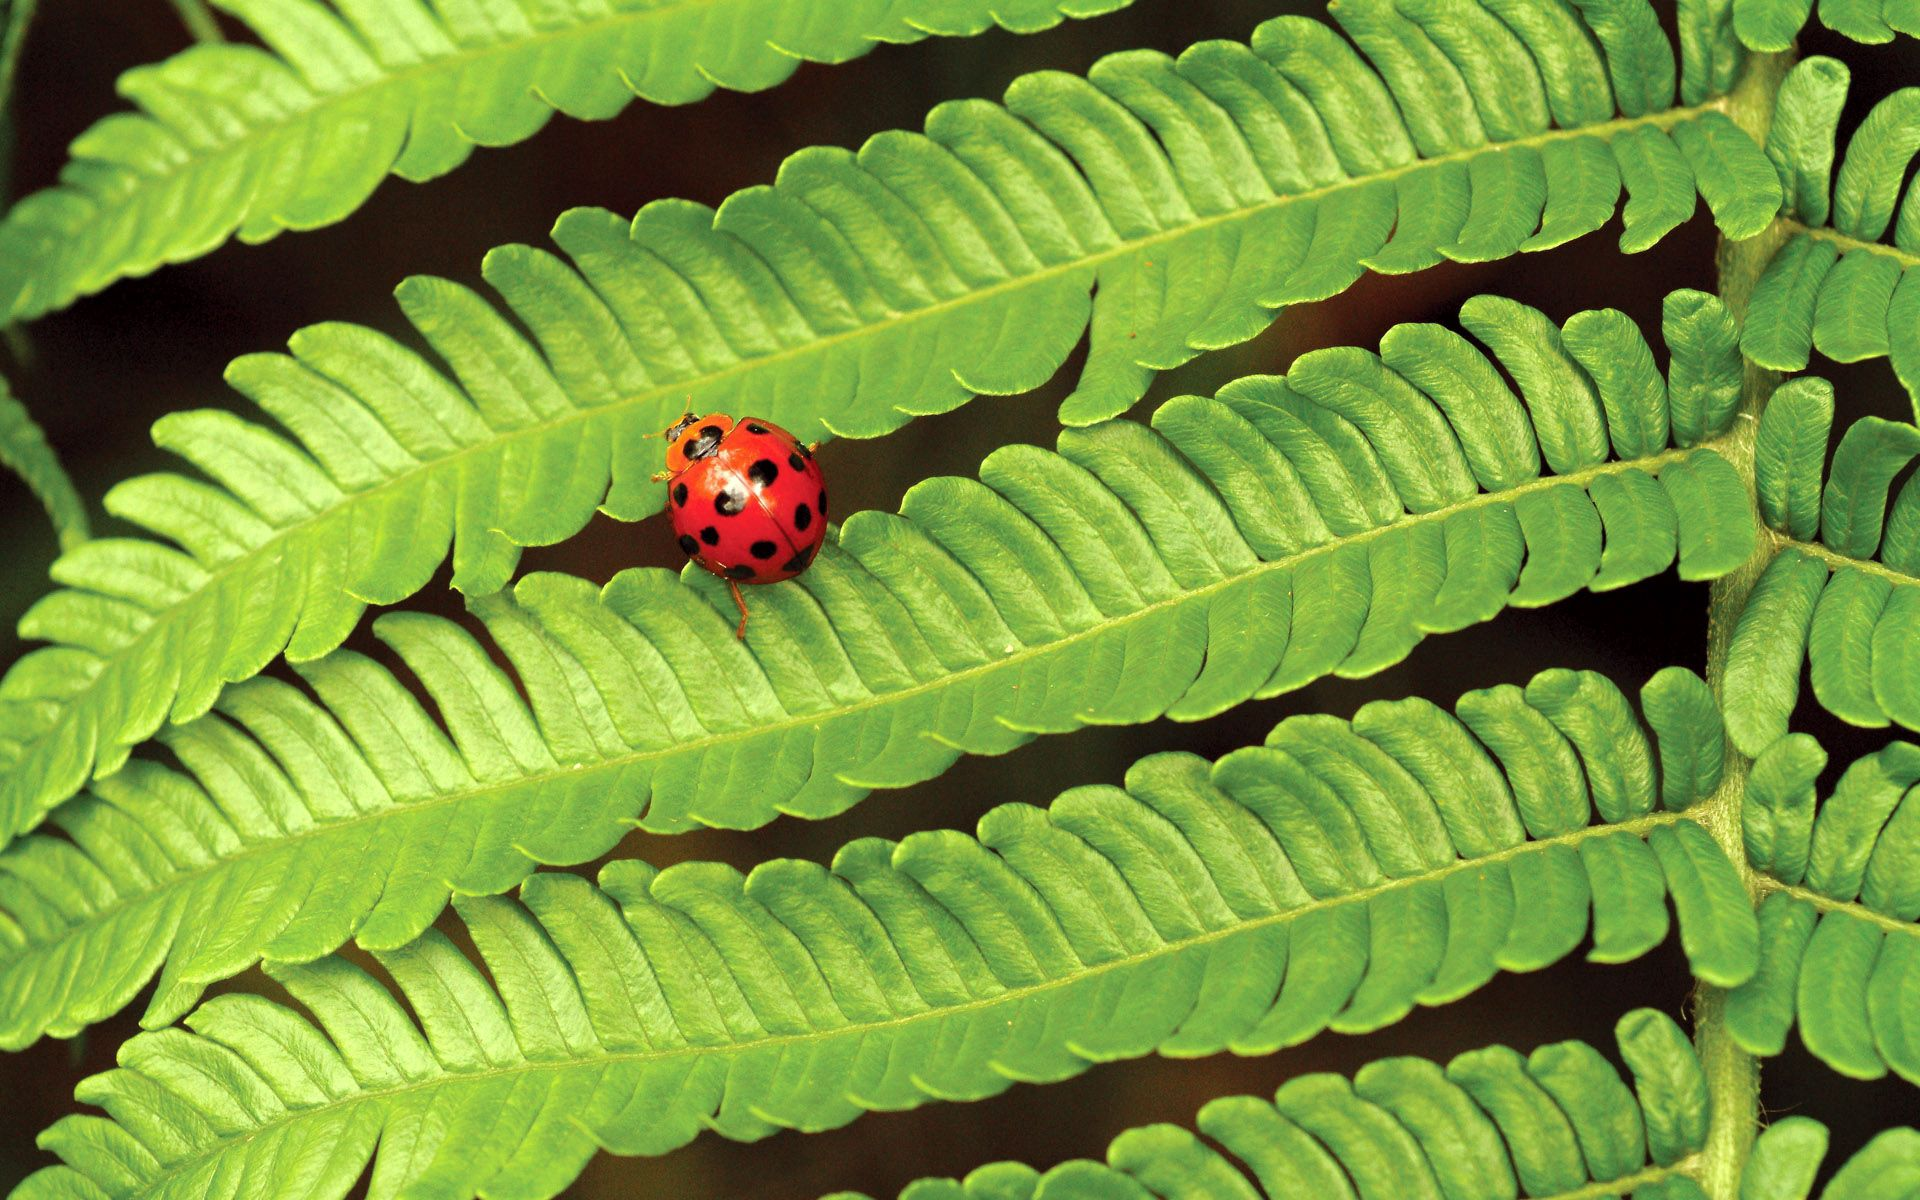 83933 download wallpaper Macro, Fern, Ladybug, Ladybird, Insect, Leaves, Plant screensavers and pictures for free